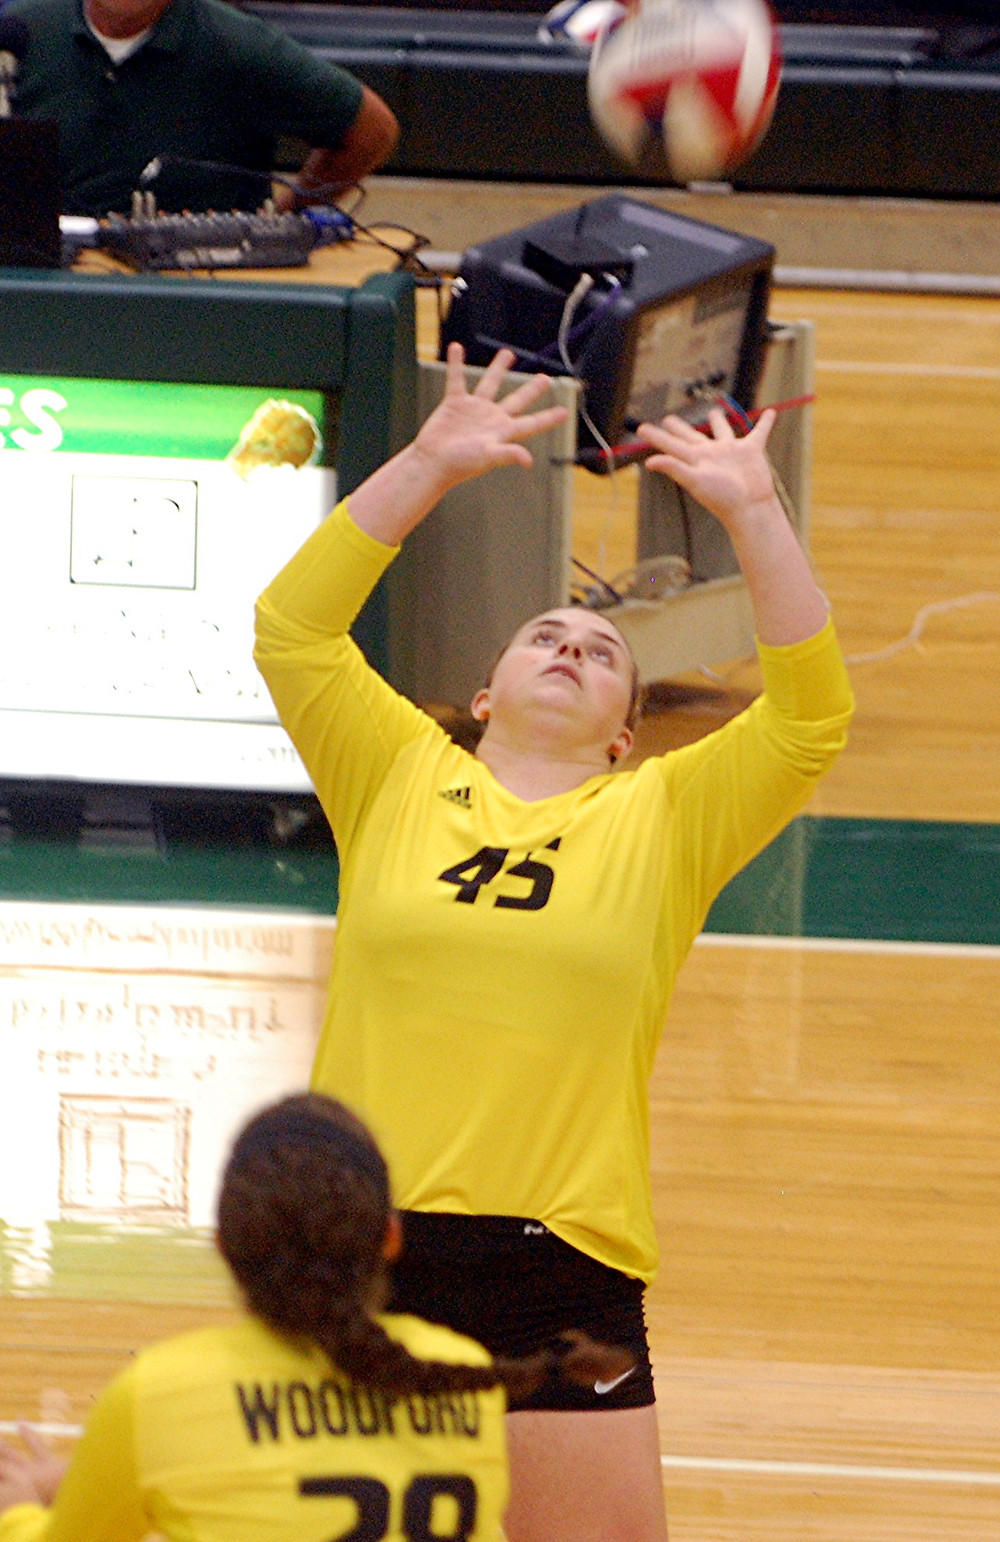 """The Woodford County High School volleyball team might be young """"on paper,"""" but they played like veteran  upperclassman as they overcame a season-ending injury to a key player, senior Morgan Kennedy, but then dug down, regained momentum and scored an exciting 3-2 (25-23, 25-23, 19-25, 20-25, 15-10) road win over district rival Western Hills on Thursday, Aug. 18.  With that win, and their 2-1 (25-18, 20-25, 25-22) season opening road win over Marion County on Tuesday, Aug. 16, Woodford is now 2-0 this season.  """"Overall, I was pleased with how we played in our season opener against Marion County,"""" said third-year Woodford head coach Megan Bottom. """"We came out with a lot of focus, energy, and aggression early on. While these components ebbed and flowed during the match, the team learned the importance of having consistency in all three of these areas in order to be successful.""""  While the win over Marion County was a good way to start the season, the win over Western Hills, a district rival, especially on the road, is even more important as the Lady Jackets now have confidence in their playing abilities after such a strong comeback win to start the year off.   """"They came out and they were ready to play (against Western Hills),"""" said Bottom. """"They were ready to win. We talked about working hard in practice and fighting. The 12 of them versus everybody else. And, they came out with that mentality.   """"Then, when Kennedy went down, they had to rally back around her. They kind of got into a lull, which is no excuse. They still need to be able to push through. But, they were able to recover and finish out to get the win.""""  The first two games were tight ones from start to finish. In the first game there were seven ties and five lead changes, and at one point near the end of the first game, Woodford was down by five points twice.  In the game, Western Hills opened an early 3-1 lead, but Woodford came back to tie it 5-5. The teams continued to battle, tying 6-6, 7-7, and 10-10."""